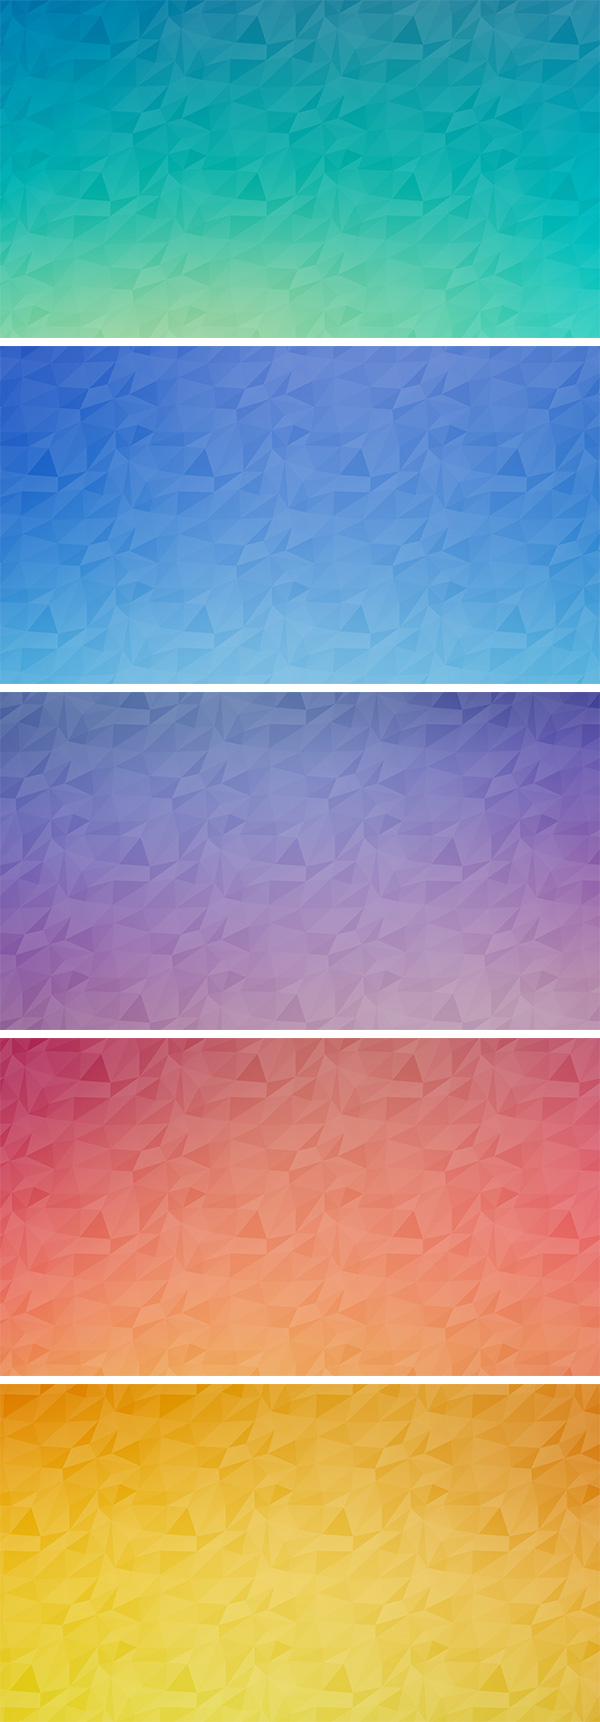 seamless polygon backgrounds vol 2